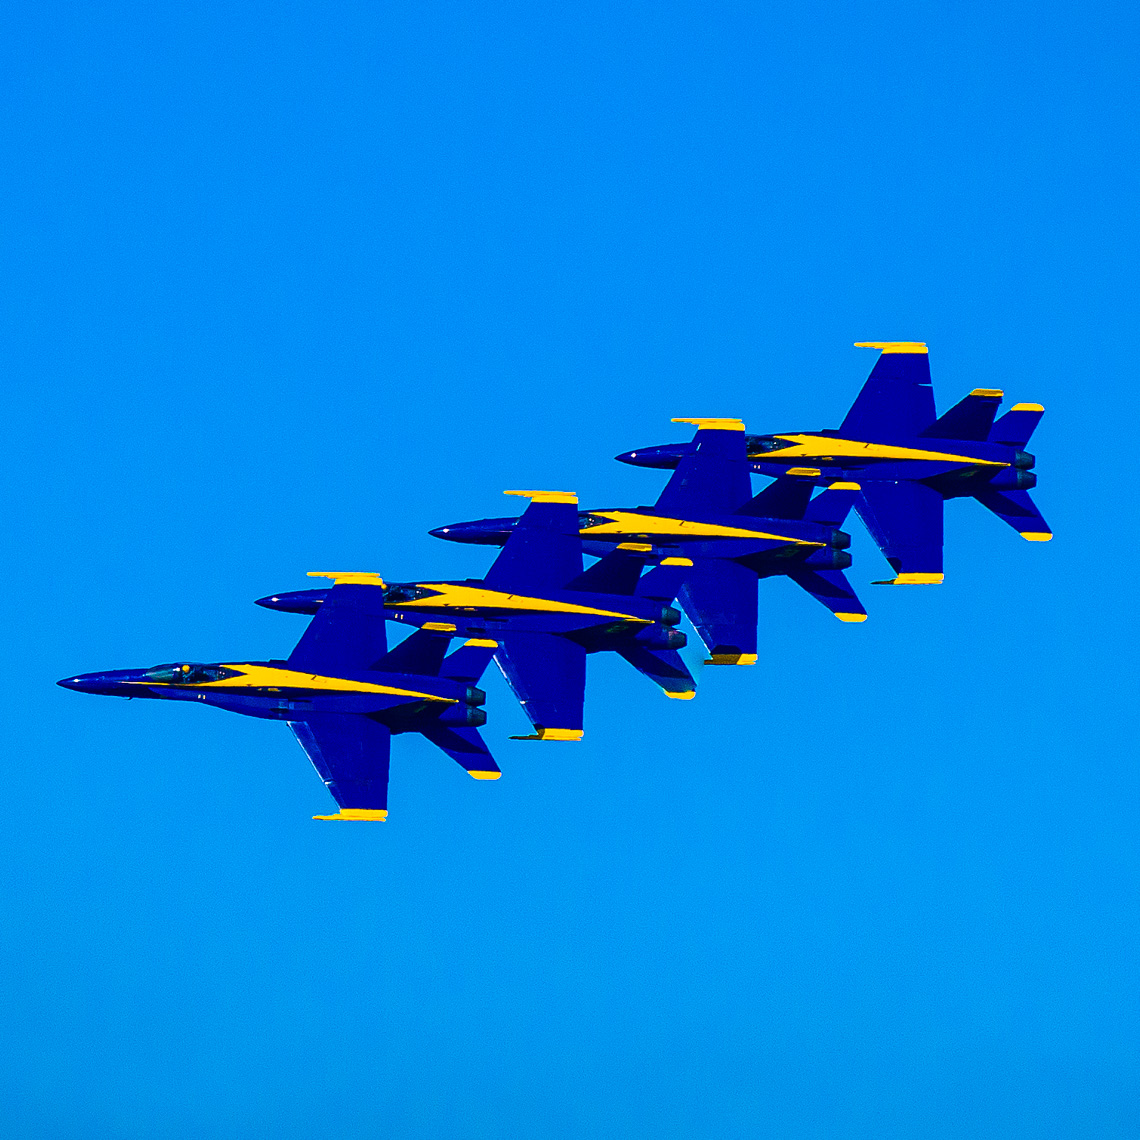 blueangels-2-Edit